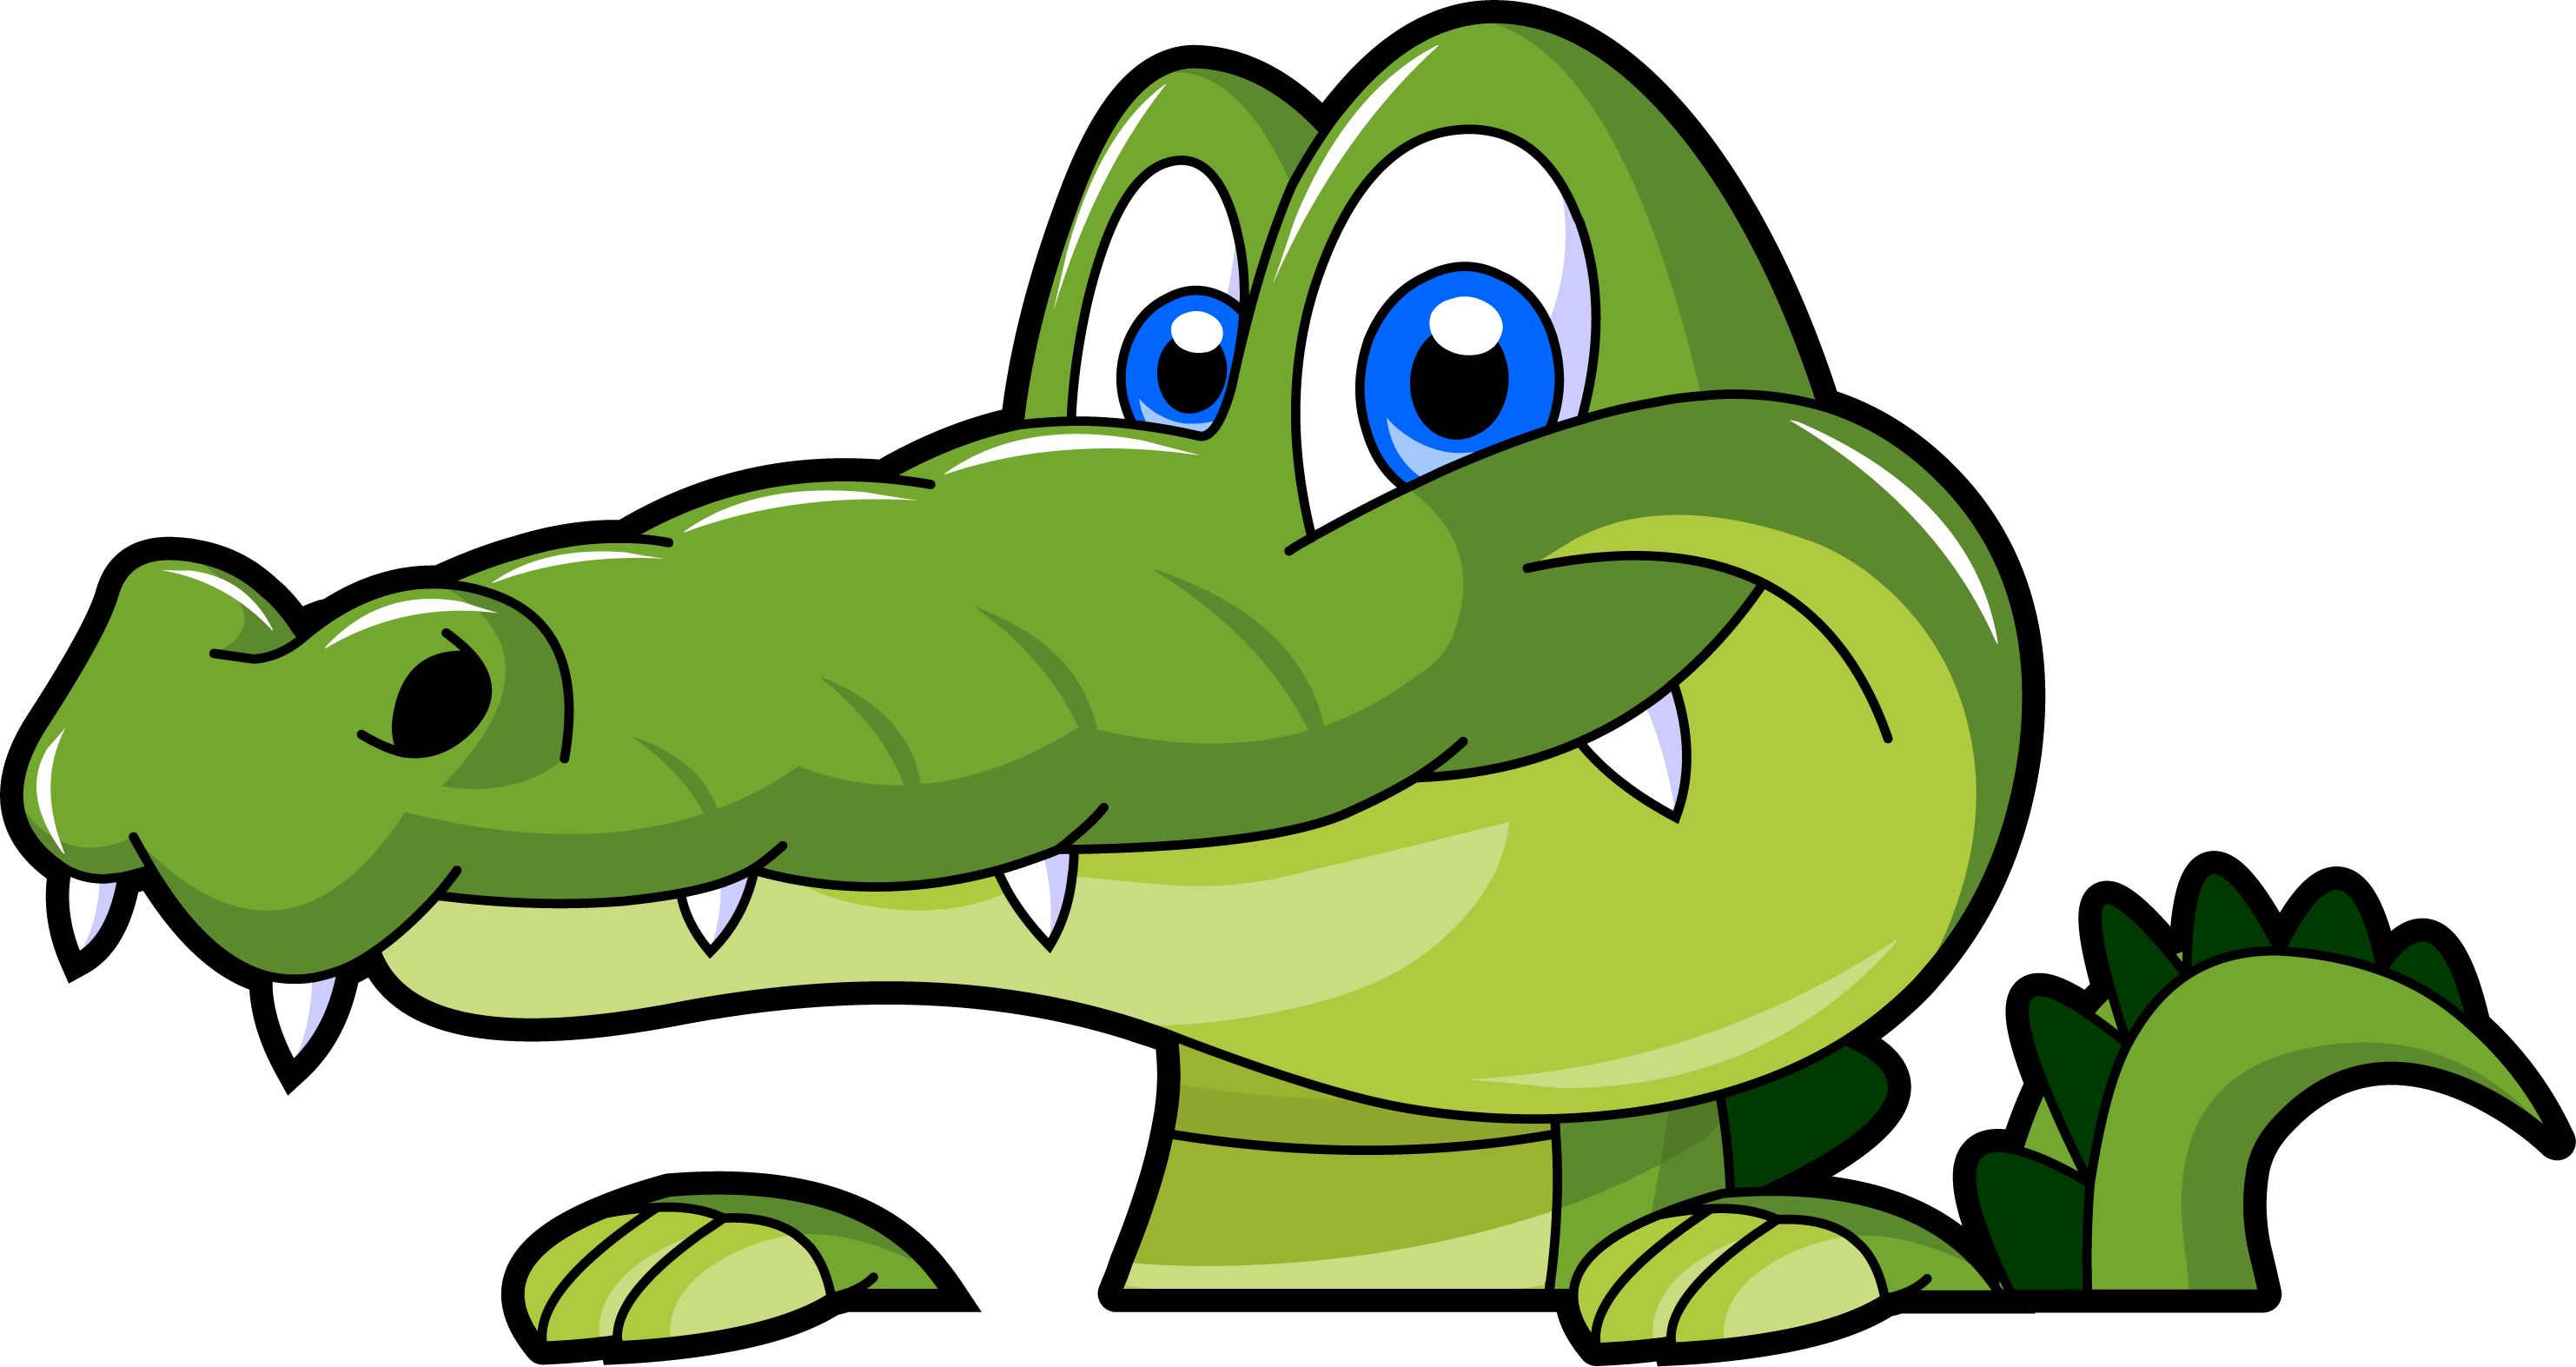 Crocodile clipart #15, Download drawings